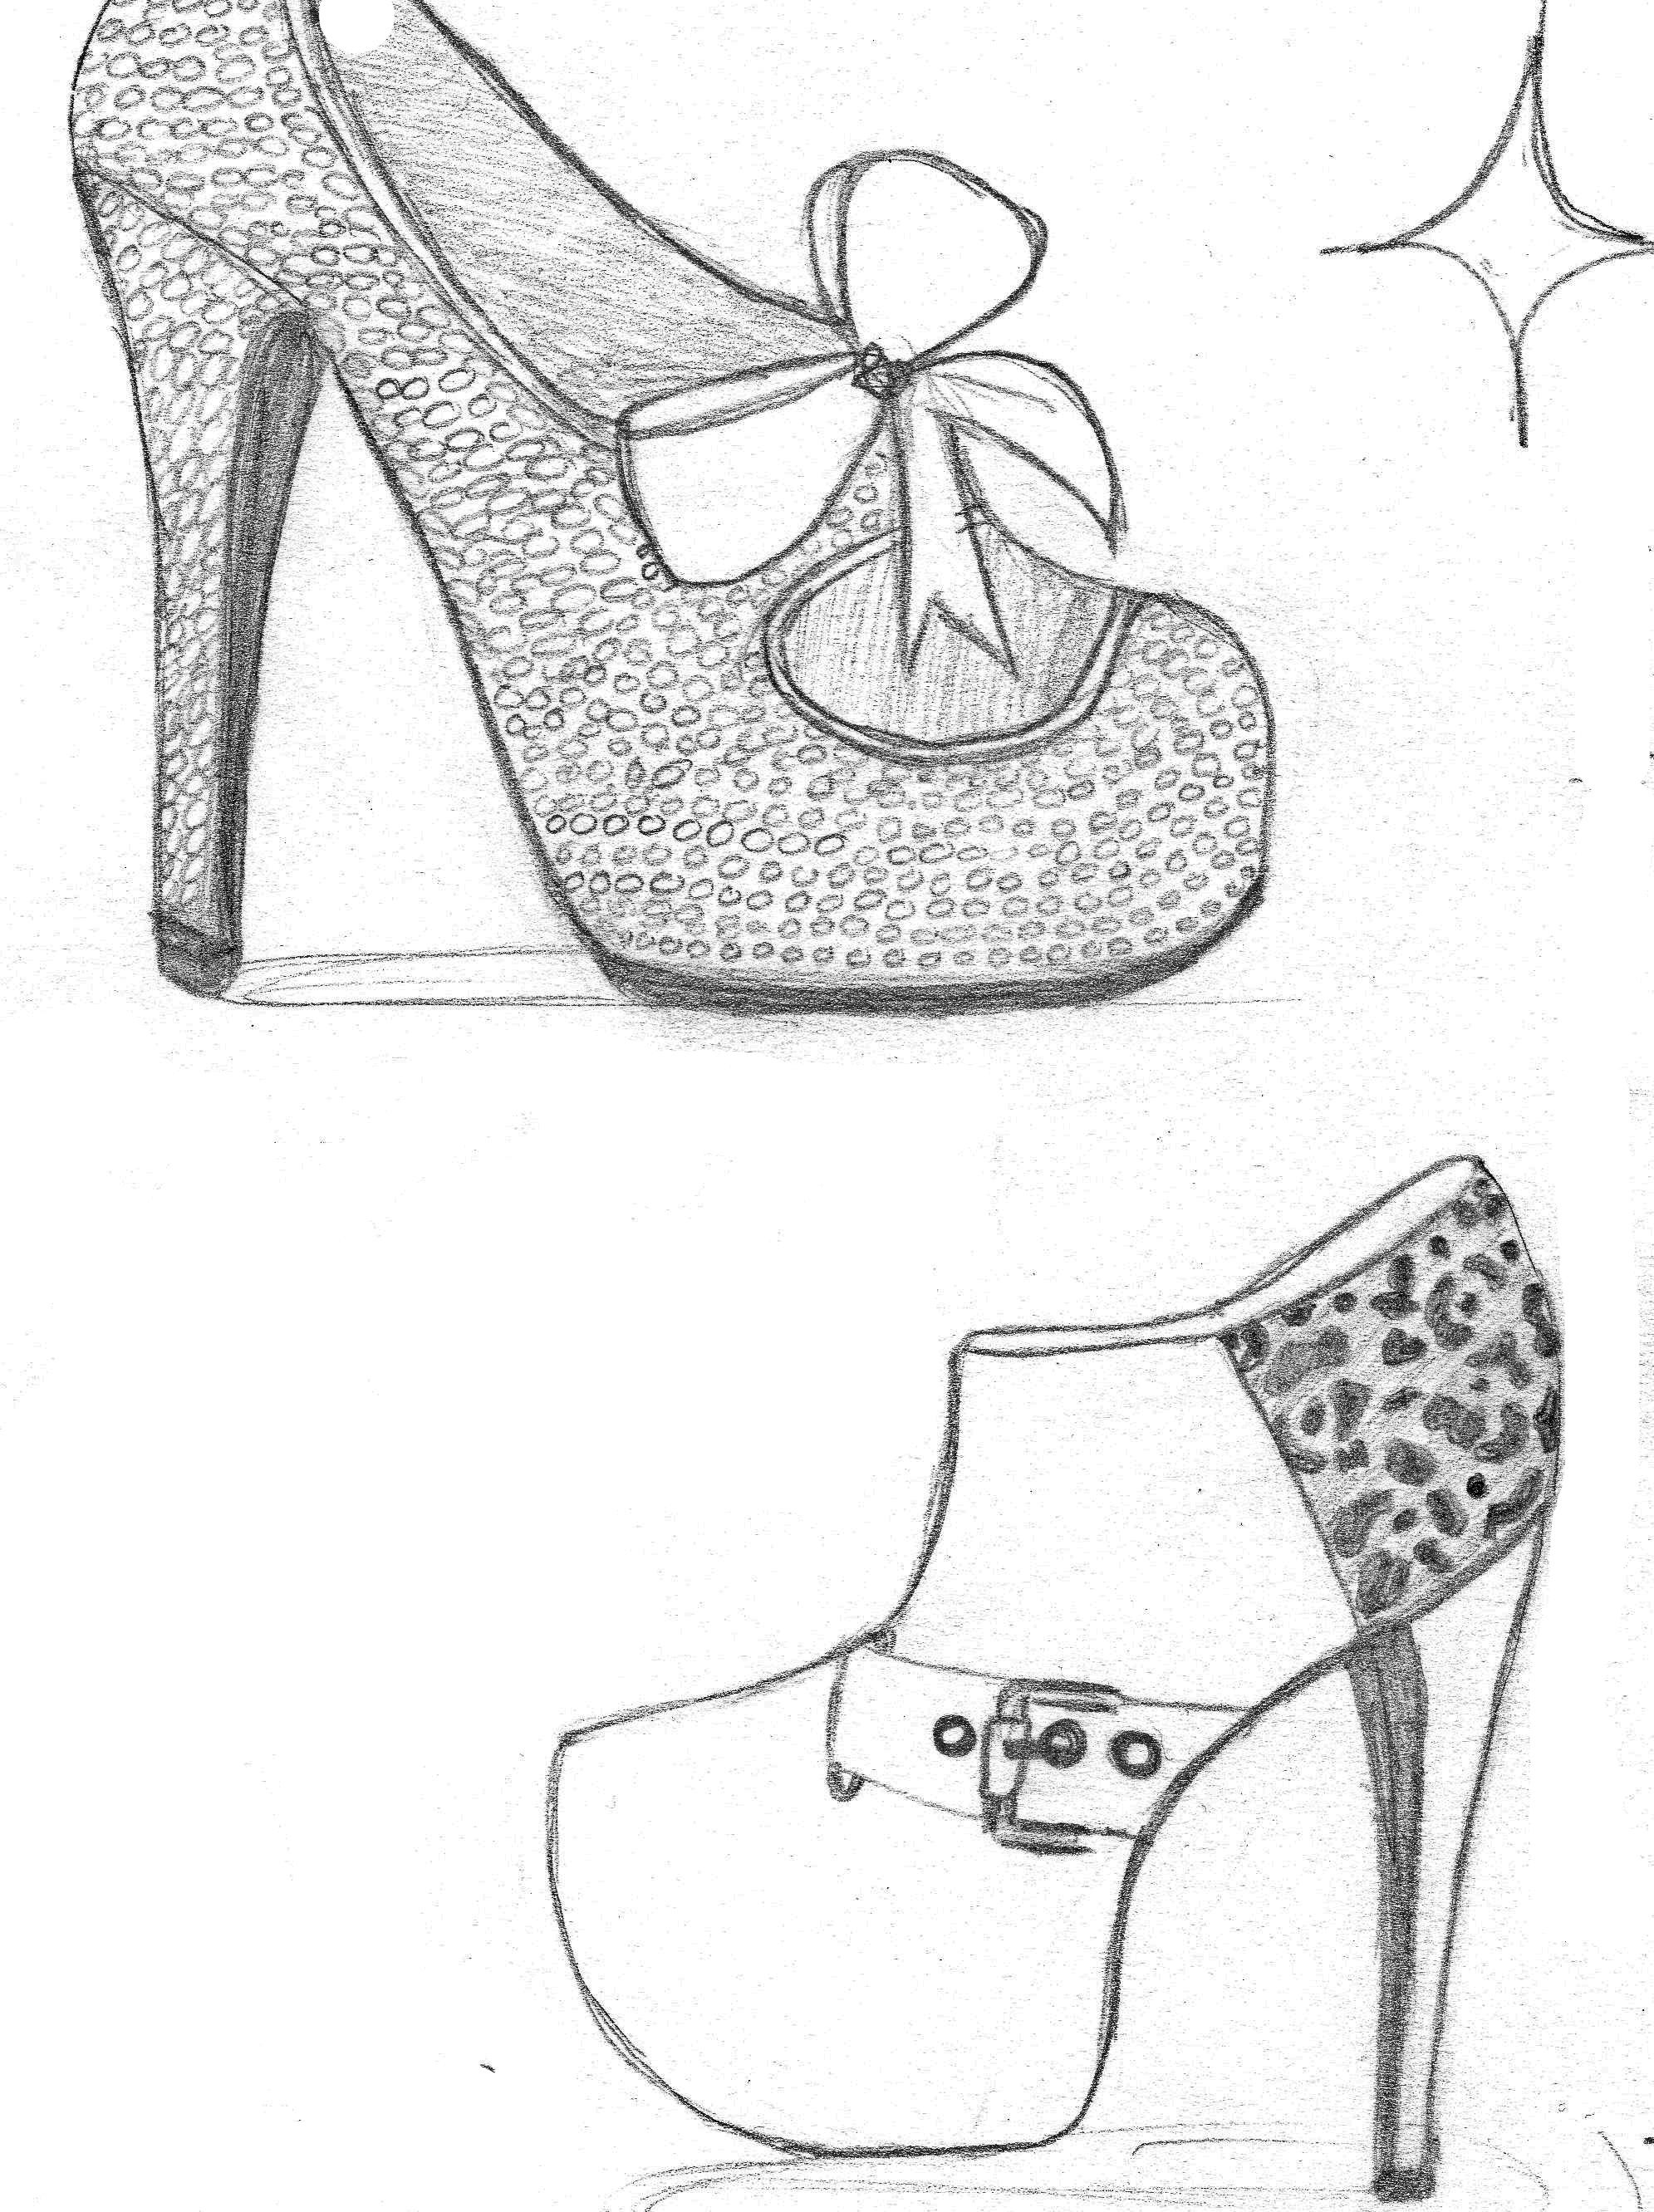 sketch of a high heel shoe sketches of high heel shoes at paintingvalleycom high shoe sketch a of heel